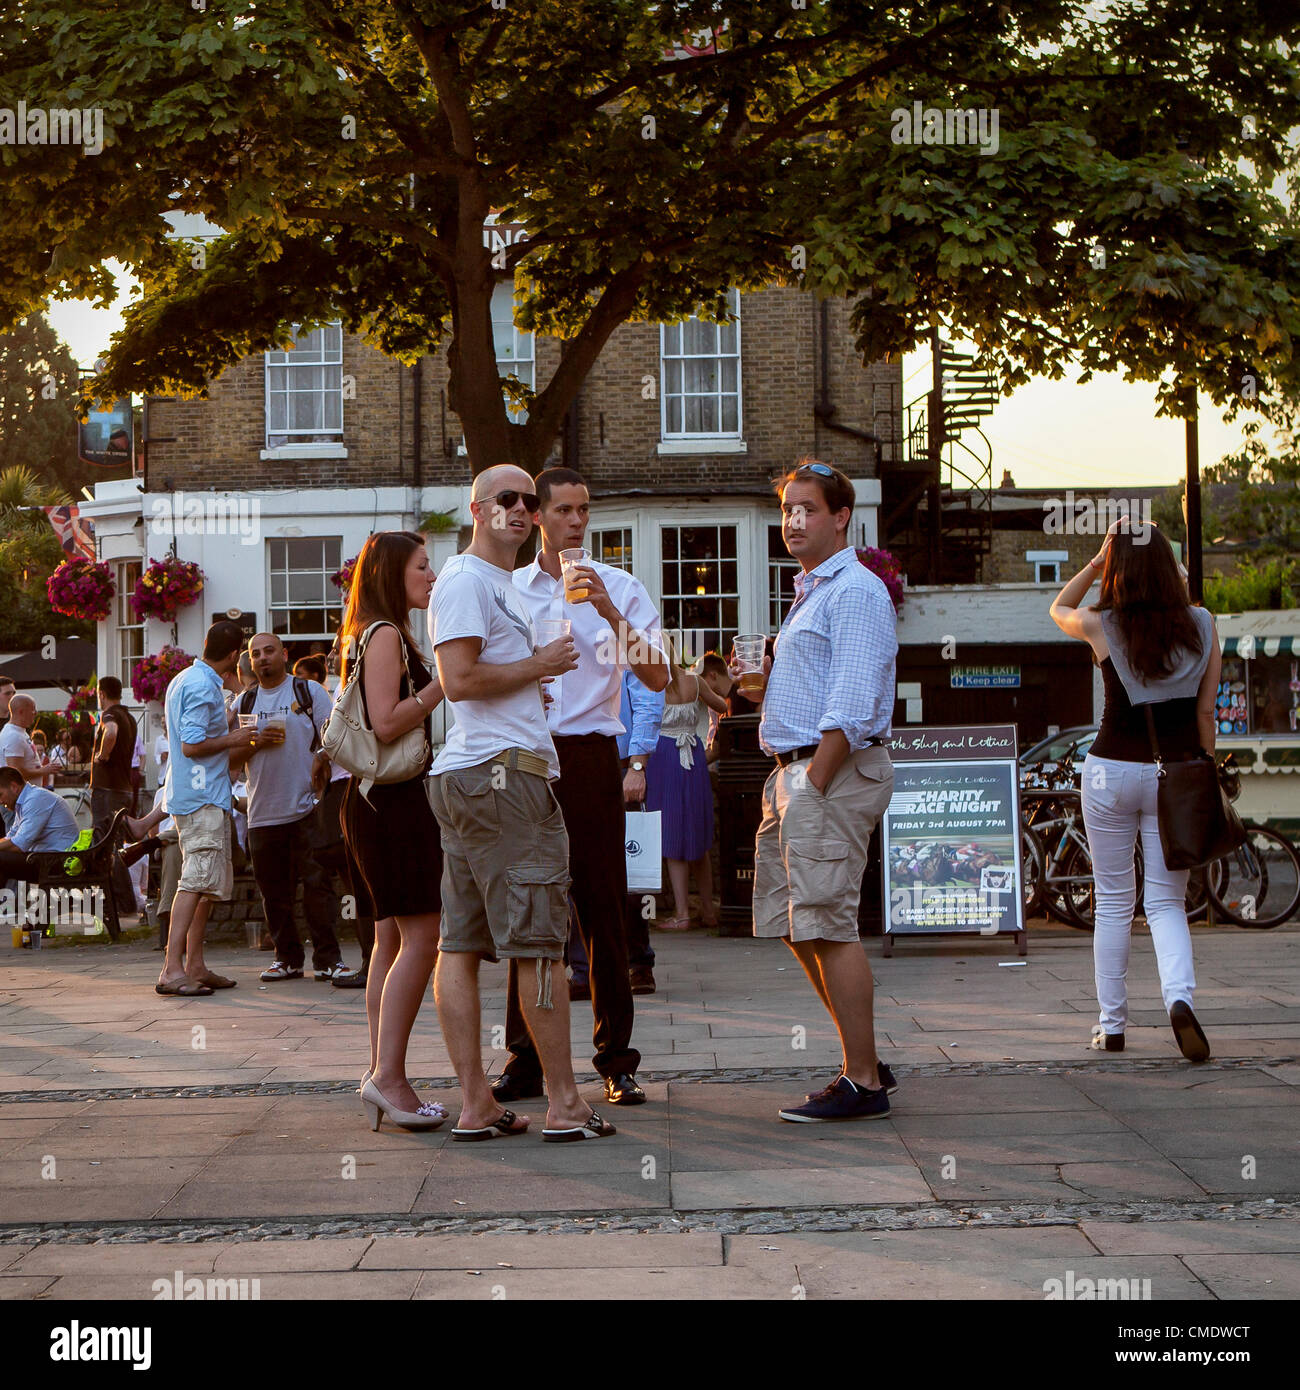 Thames riverside, Richmond Upon Thames, Greater London, UK - 25 July 2012: People left work and hurried down to - Stock Image